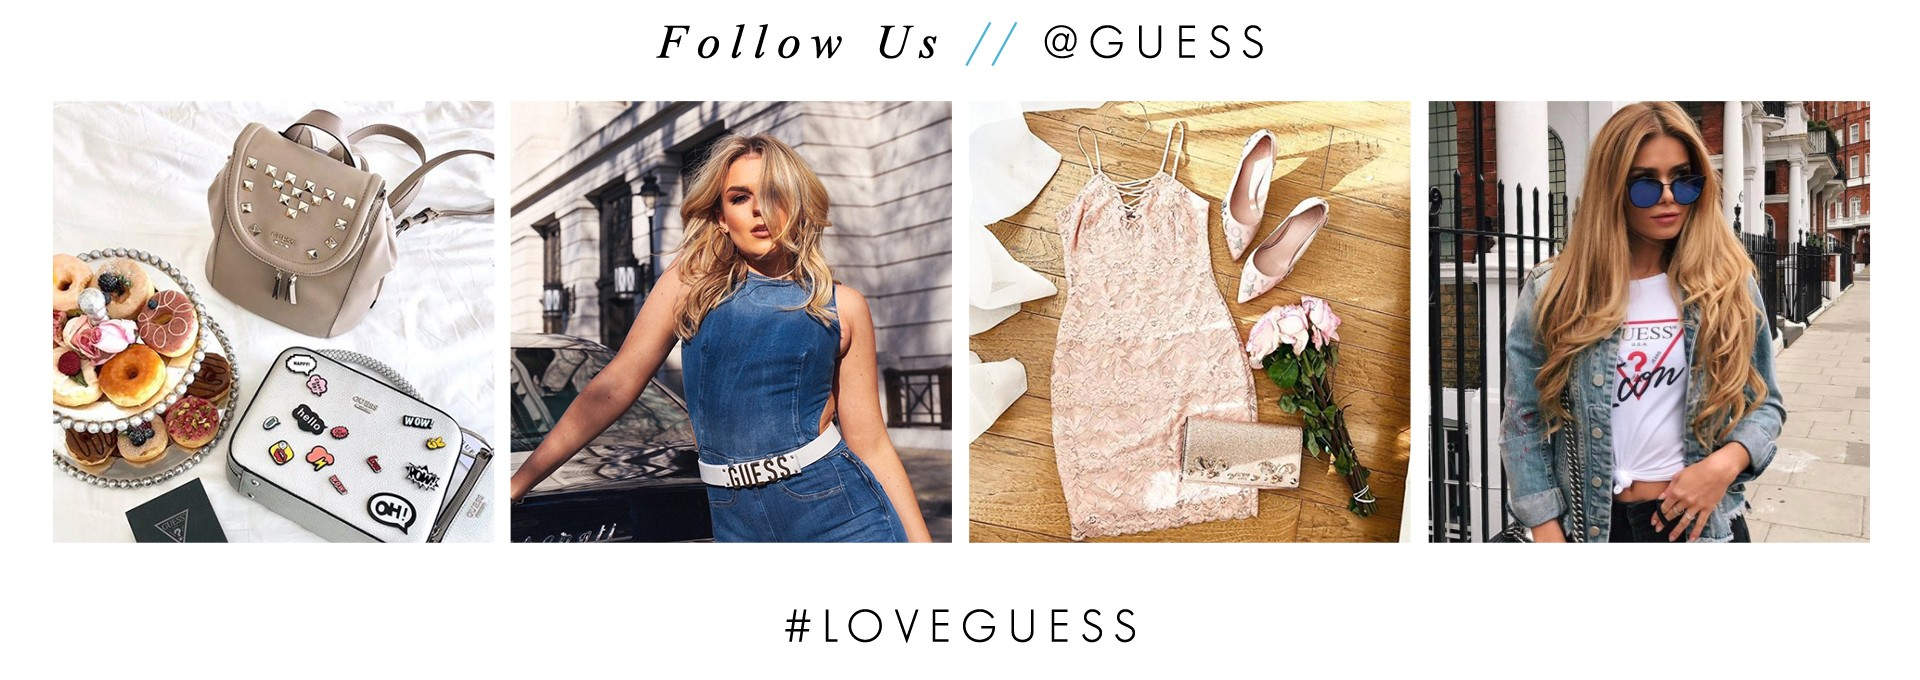 @GUESS on Instgram